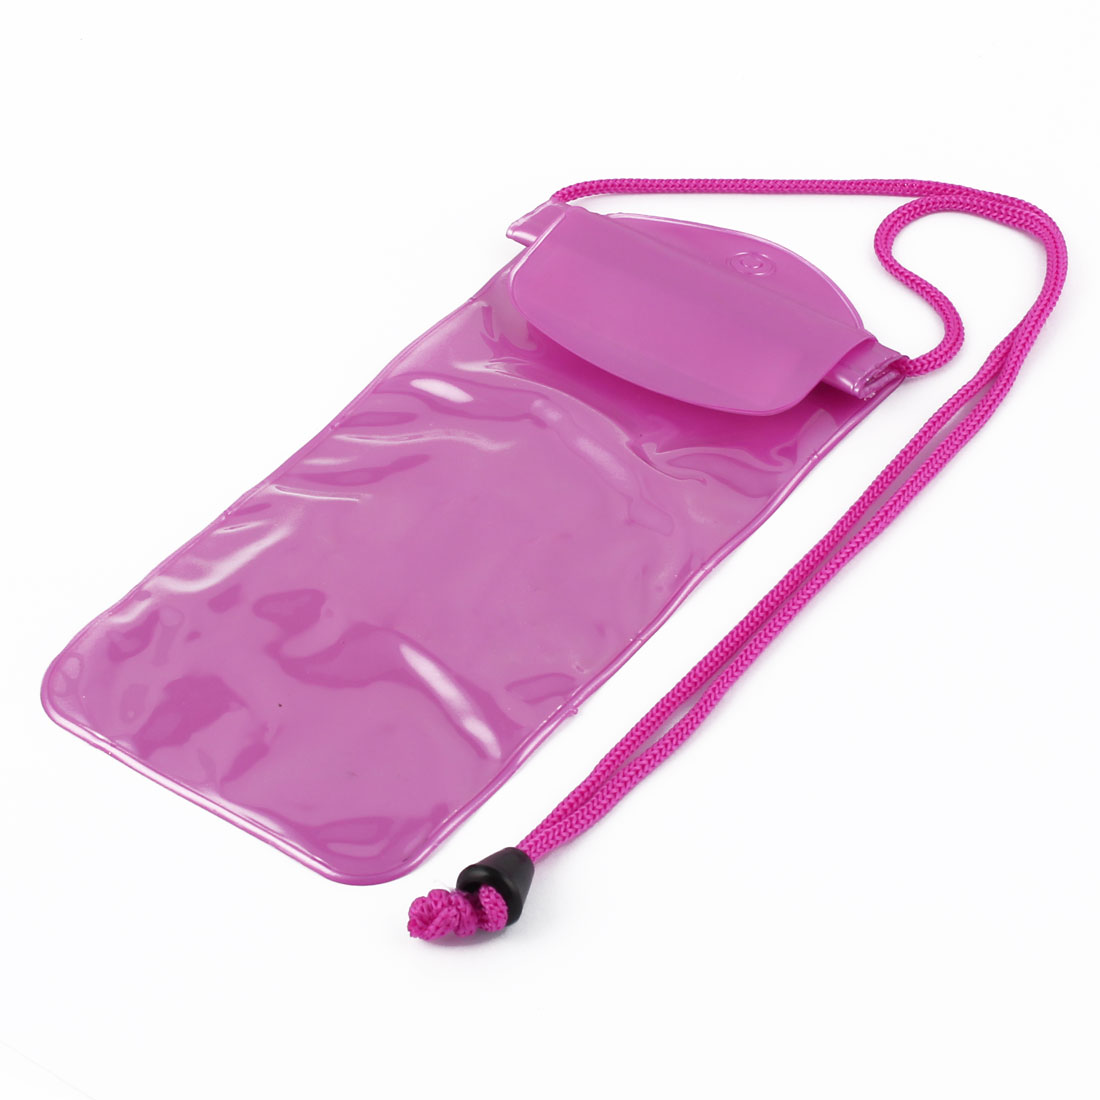 Cell Phone PVC Water Resistance Case Dry Bag Pouch Protective Holder Pink